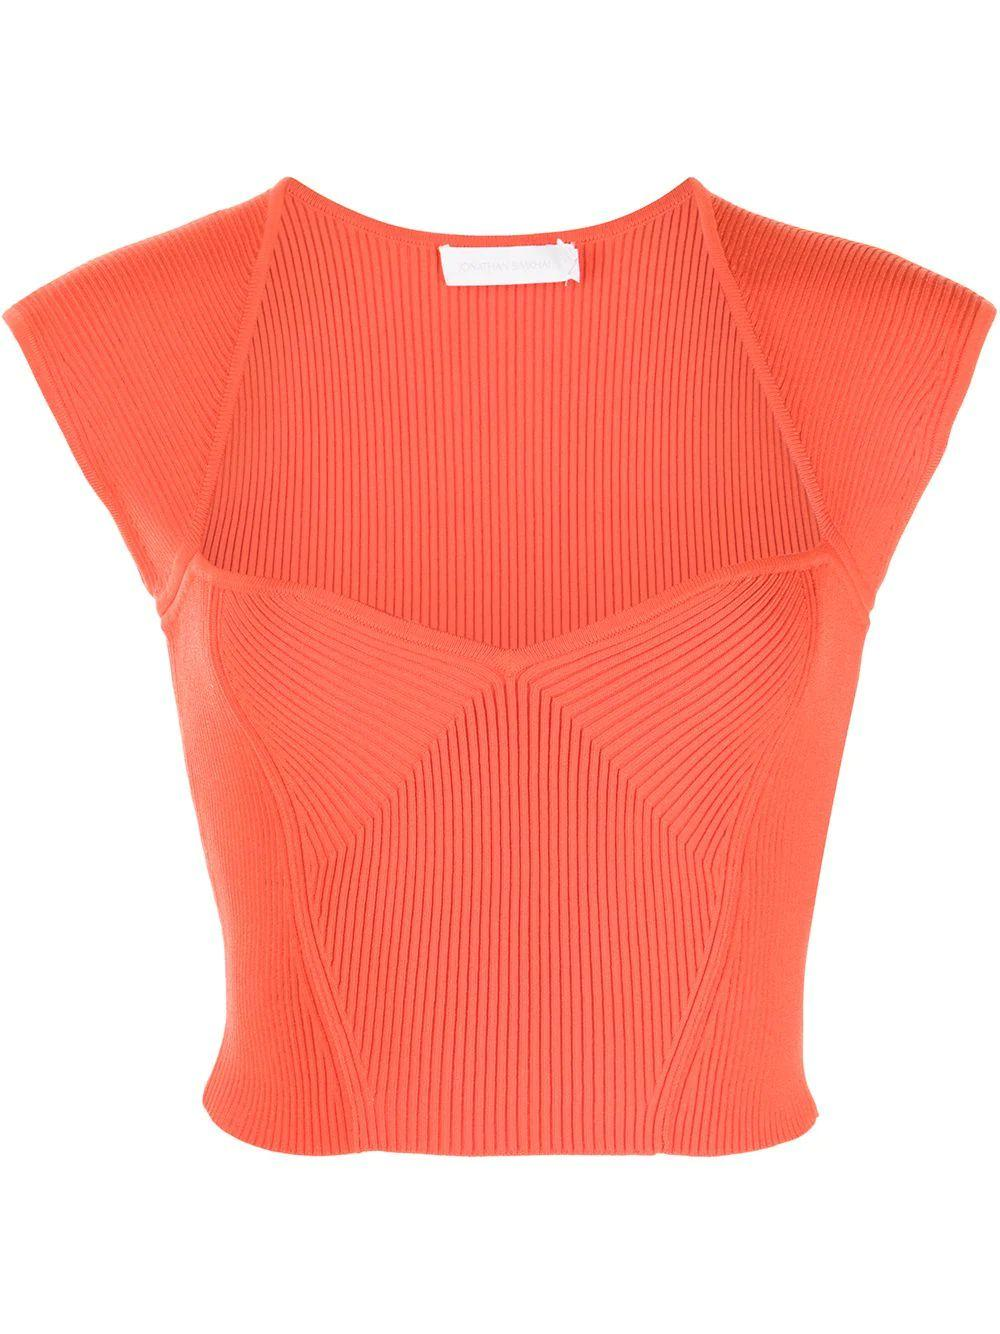 Abia Cropped Top Item # 221-2014-K